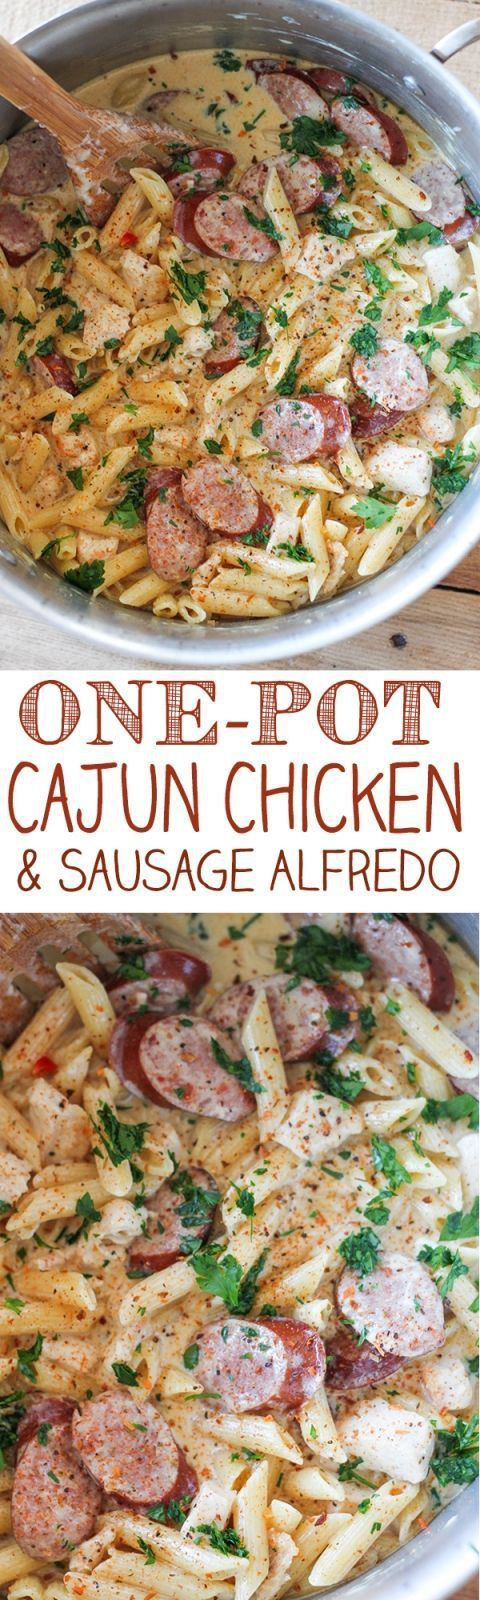 The Best Easy One Pot Pasta Family Dinner Recipes #cajuncooking